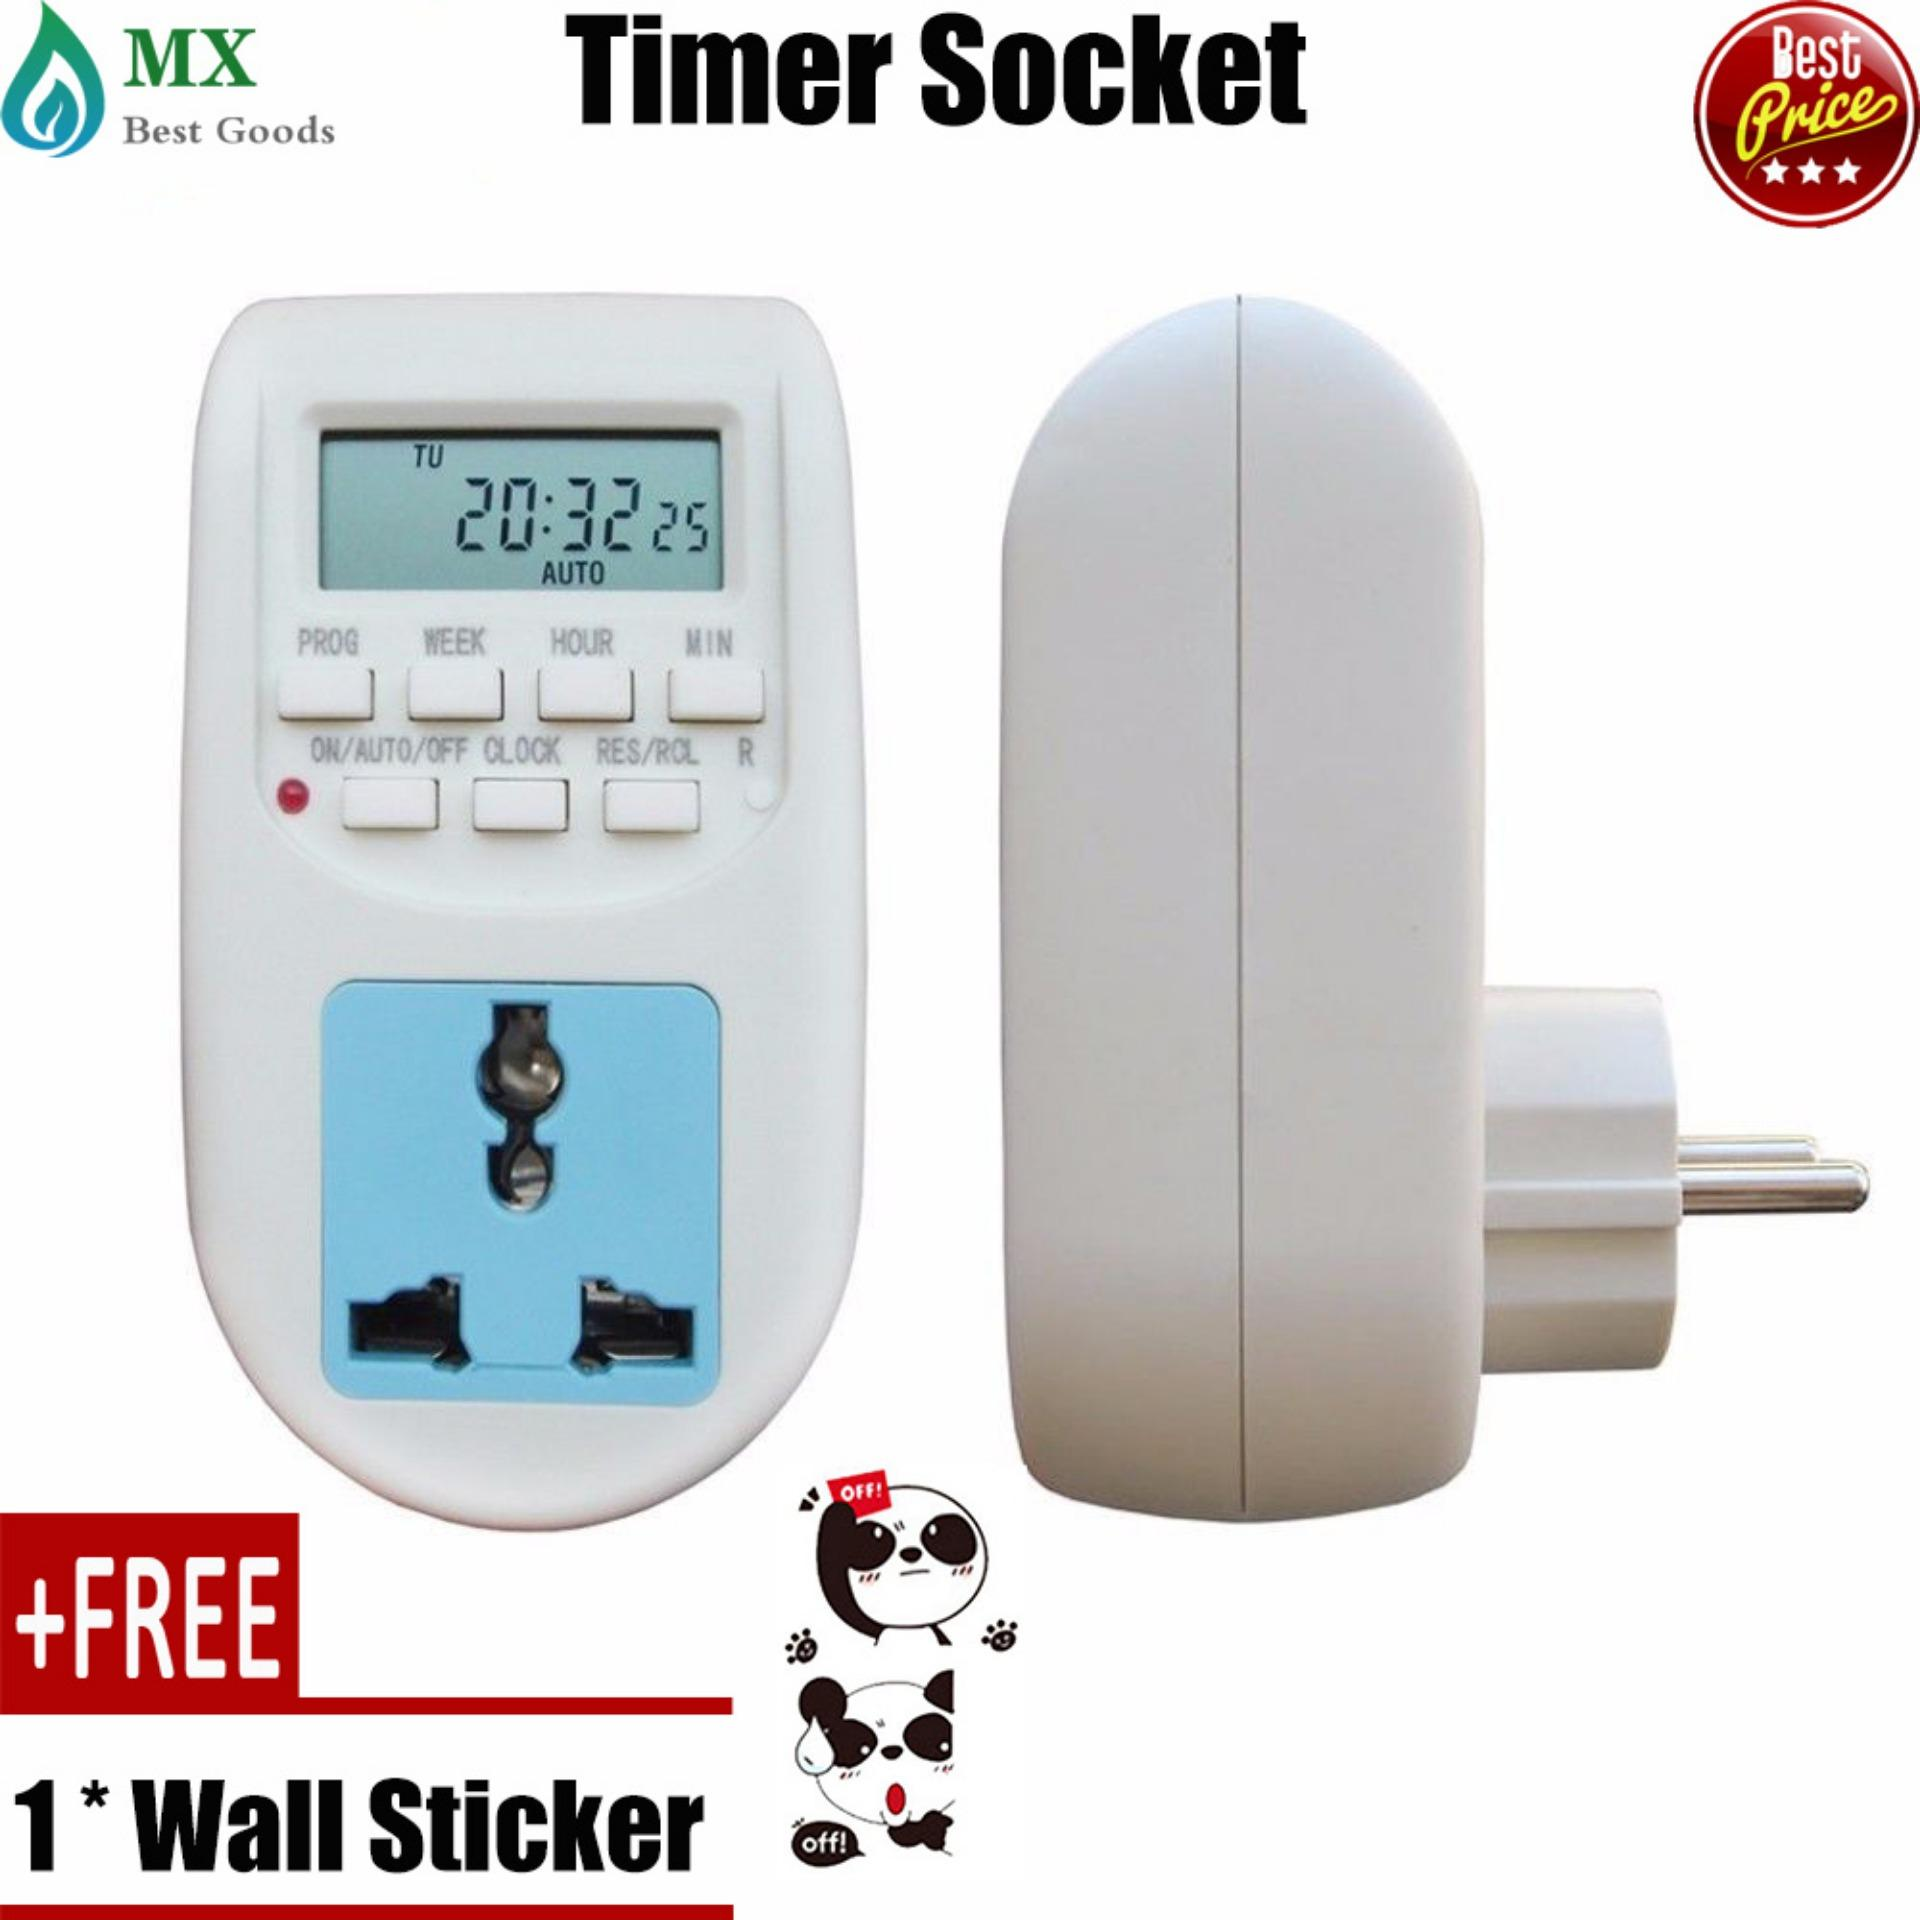 Electric Circuit For Sale Circuitry Prices Brands Review In Amplifier Auto Off Timer Free Gift 1pc 220v Multi Functional Lcd Digital Socket Timing Outlet Switch